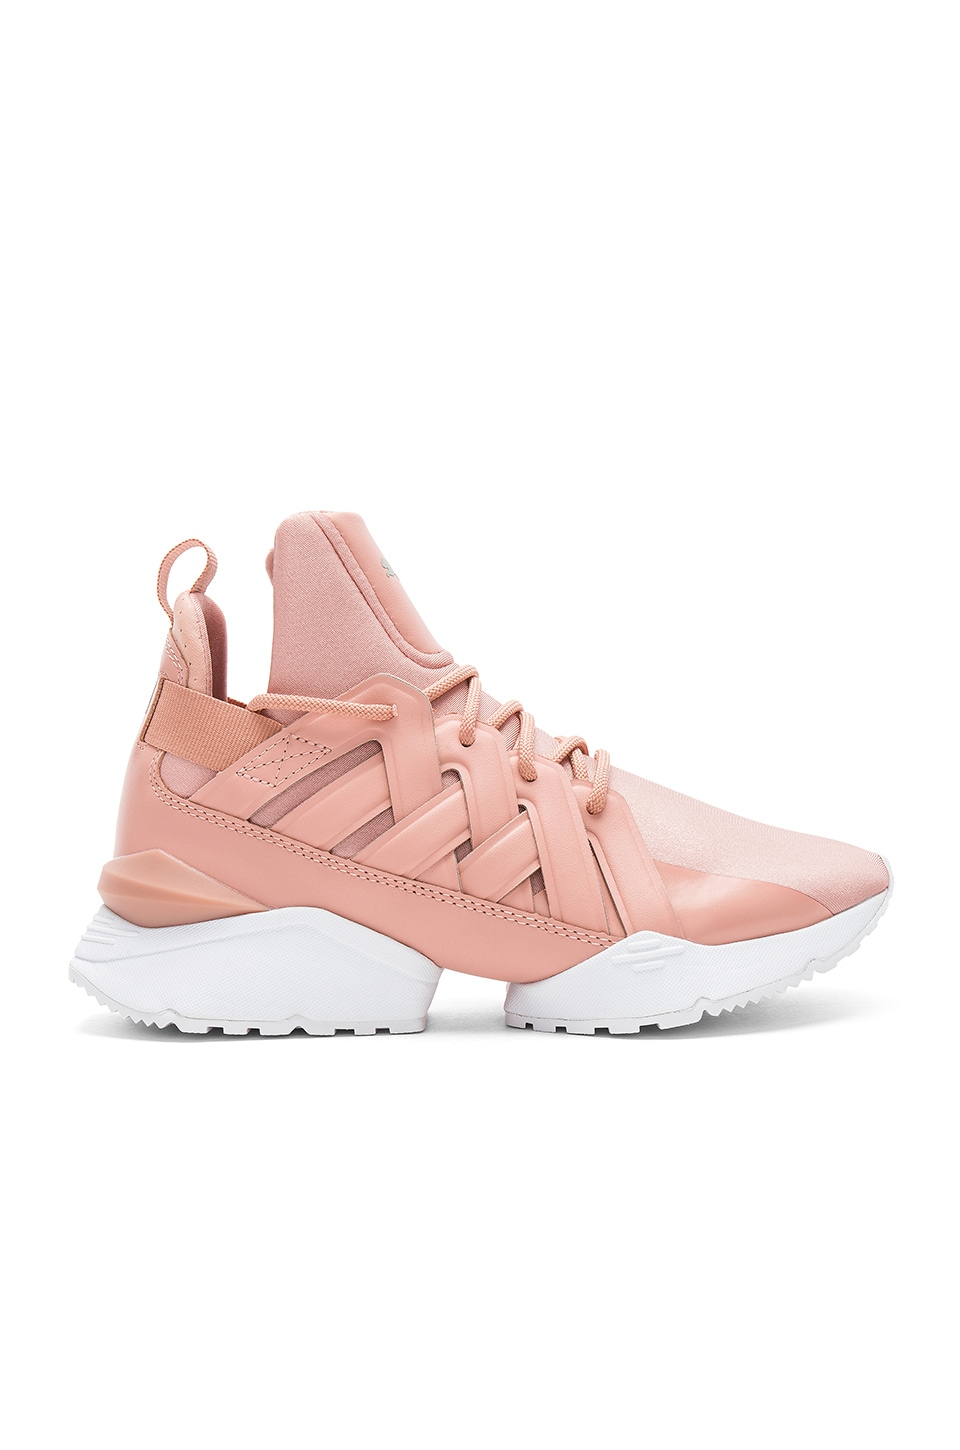 Muse Echo Satin Ep Sneaker In Pink. Muse Écho Sneaker Ep Satin Rose. - Size 6.5 (also In 10,5.5,6,7,7.5,8,8.5,9) Puma - Taille 6.5 (également 10,5.5,6,7,7.5,8,8.5,9) Pumas